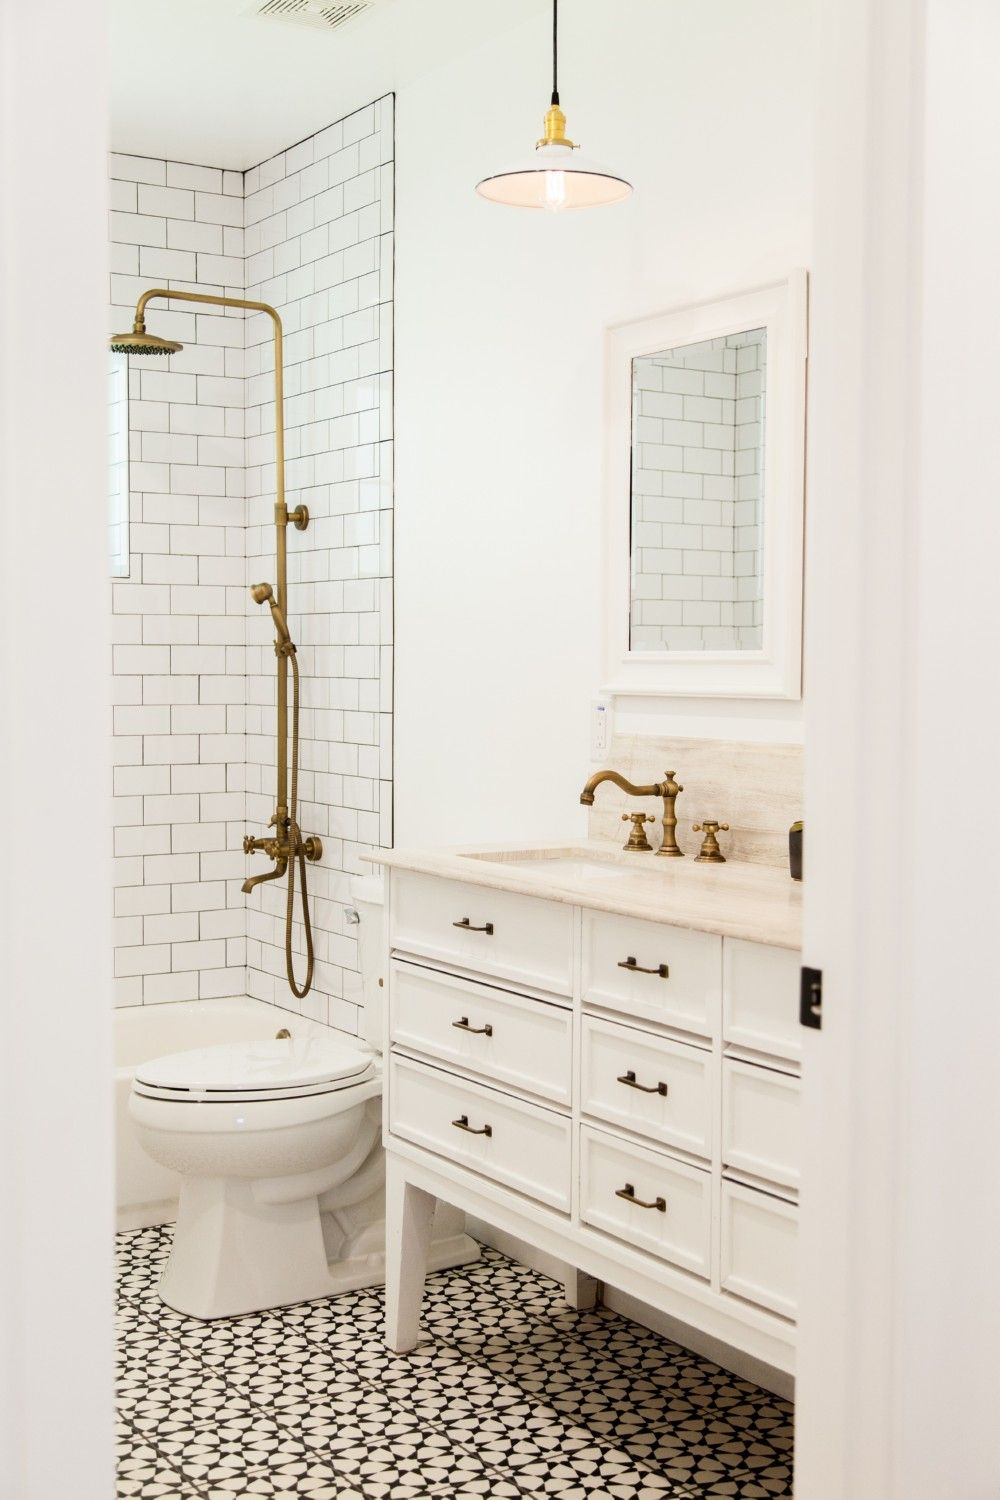 23 Amazing Ideas About Vintage Bathroom | Vintage bathrooms, Vintage ...